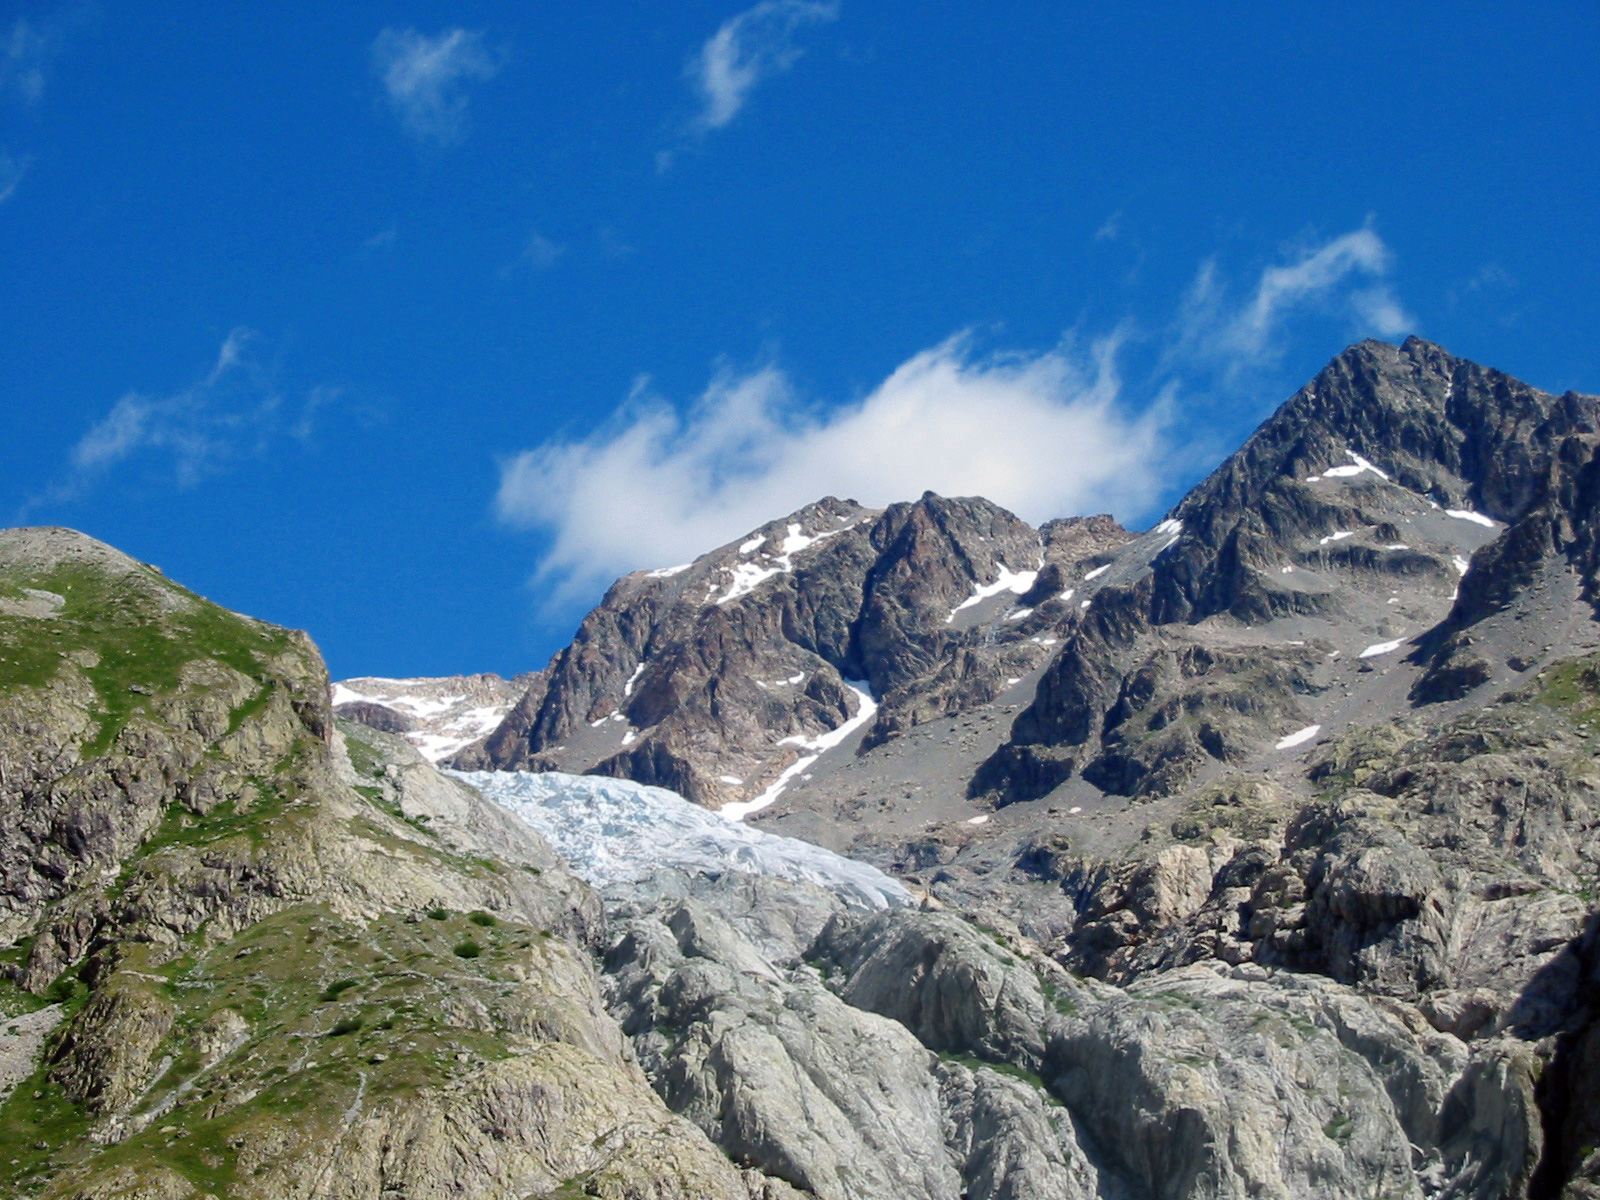 Alpine Glacier. Image Source: Wikimedia Commons.